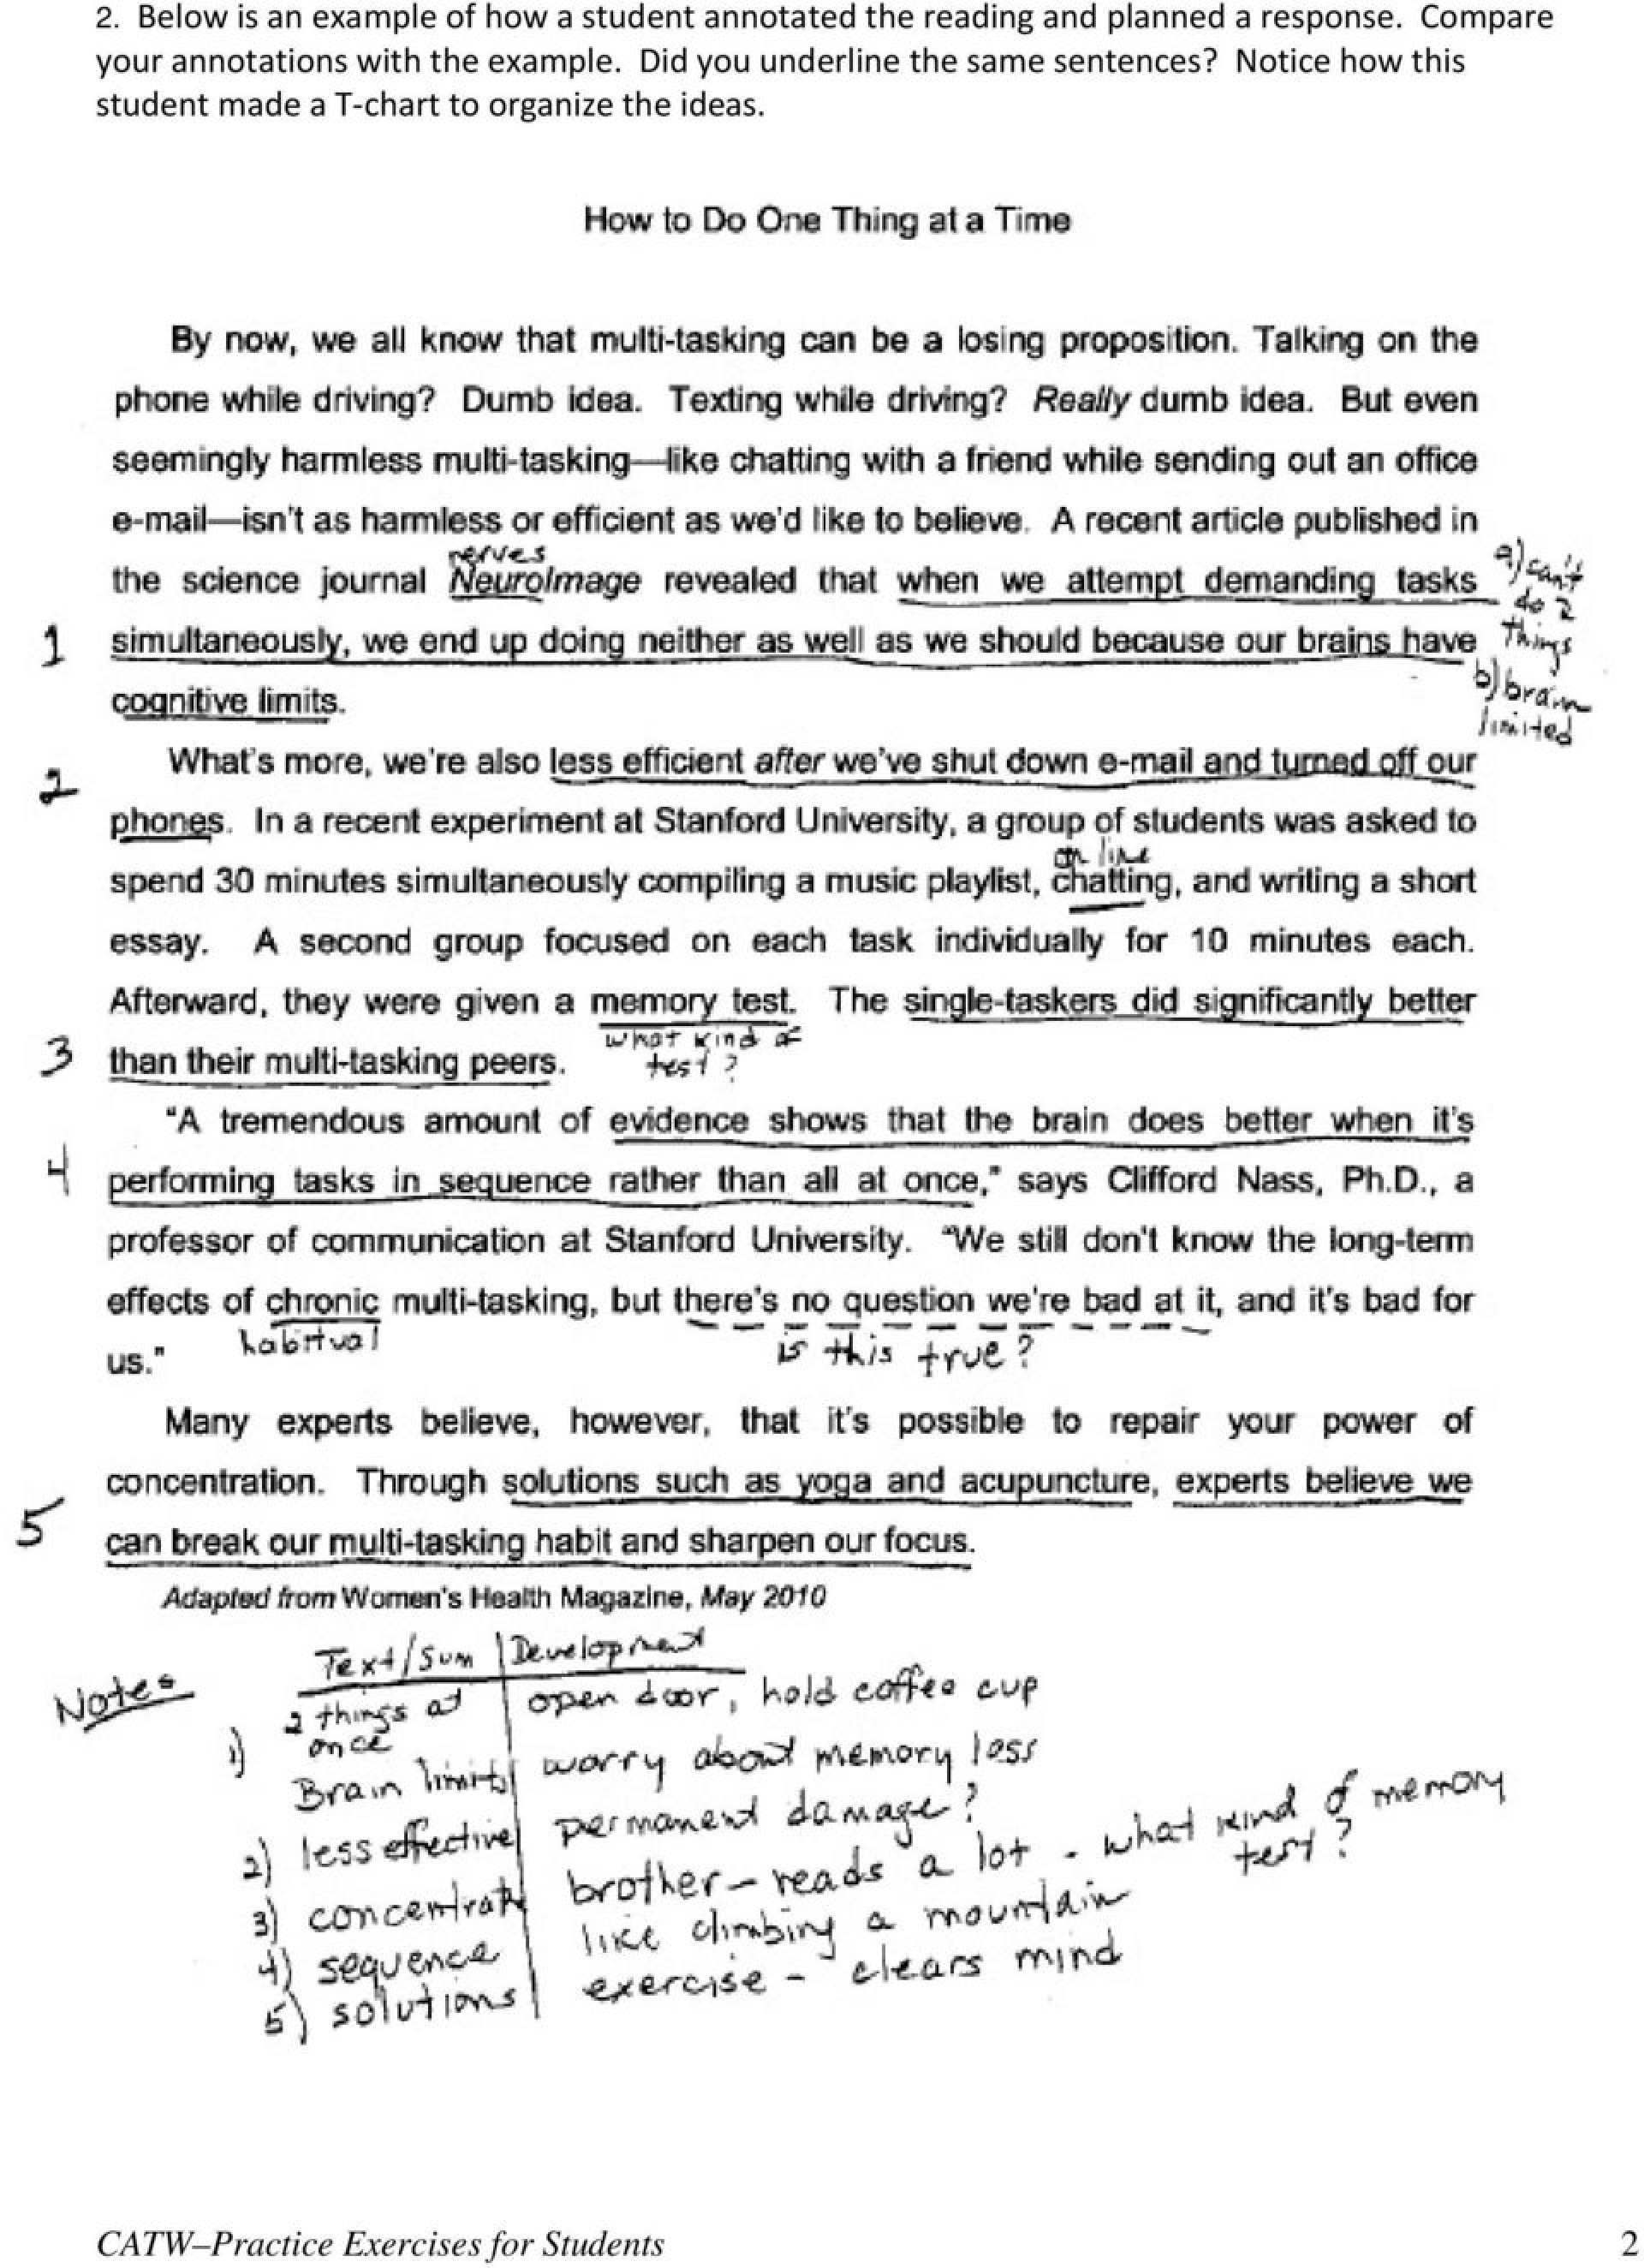 009 Medical Research Papers Topics Paper Page 3 Awful Best Ethics For High School Students 1920